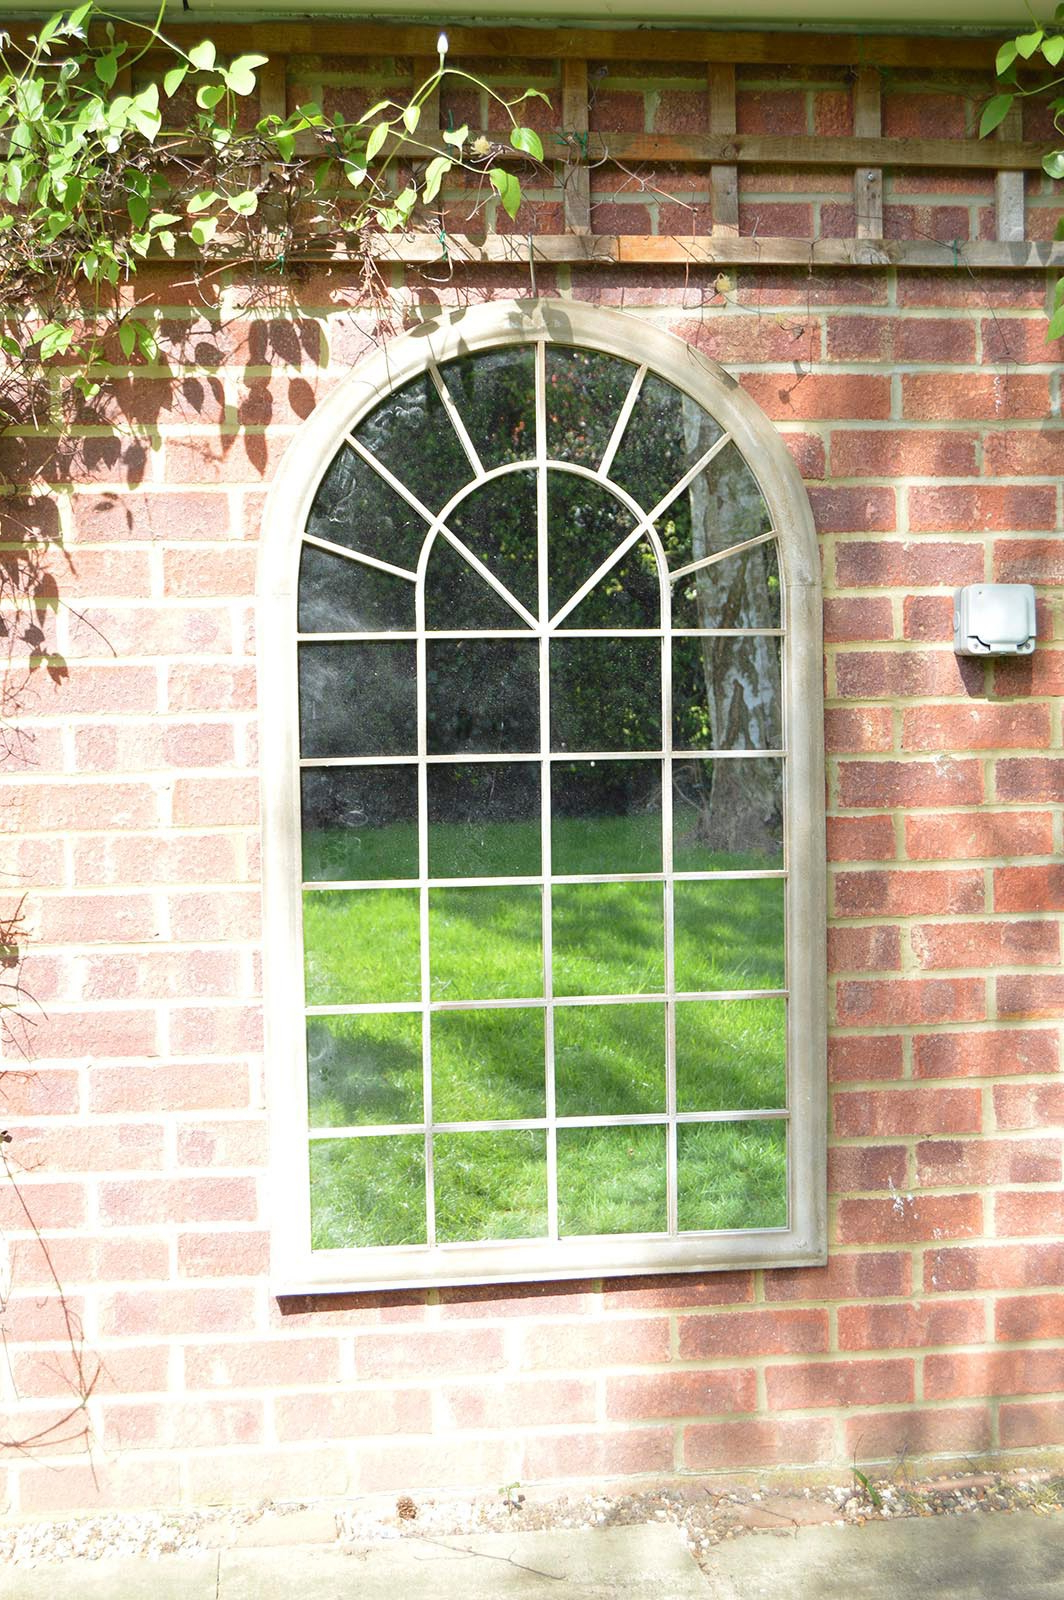 Metal Arch Window Wall Mirrors Pertaining To Well Liked Details About Large Wall Mirror Rustic French Style Arched Window Garden  Outdoor 4Ft3 X 2Ft (View 9 of 20)